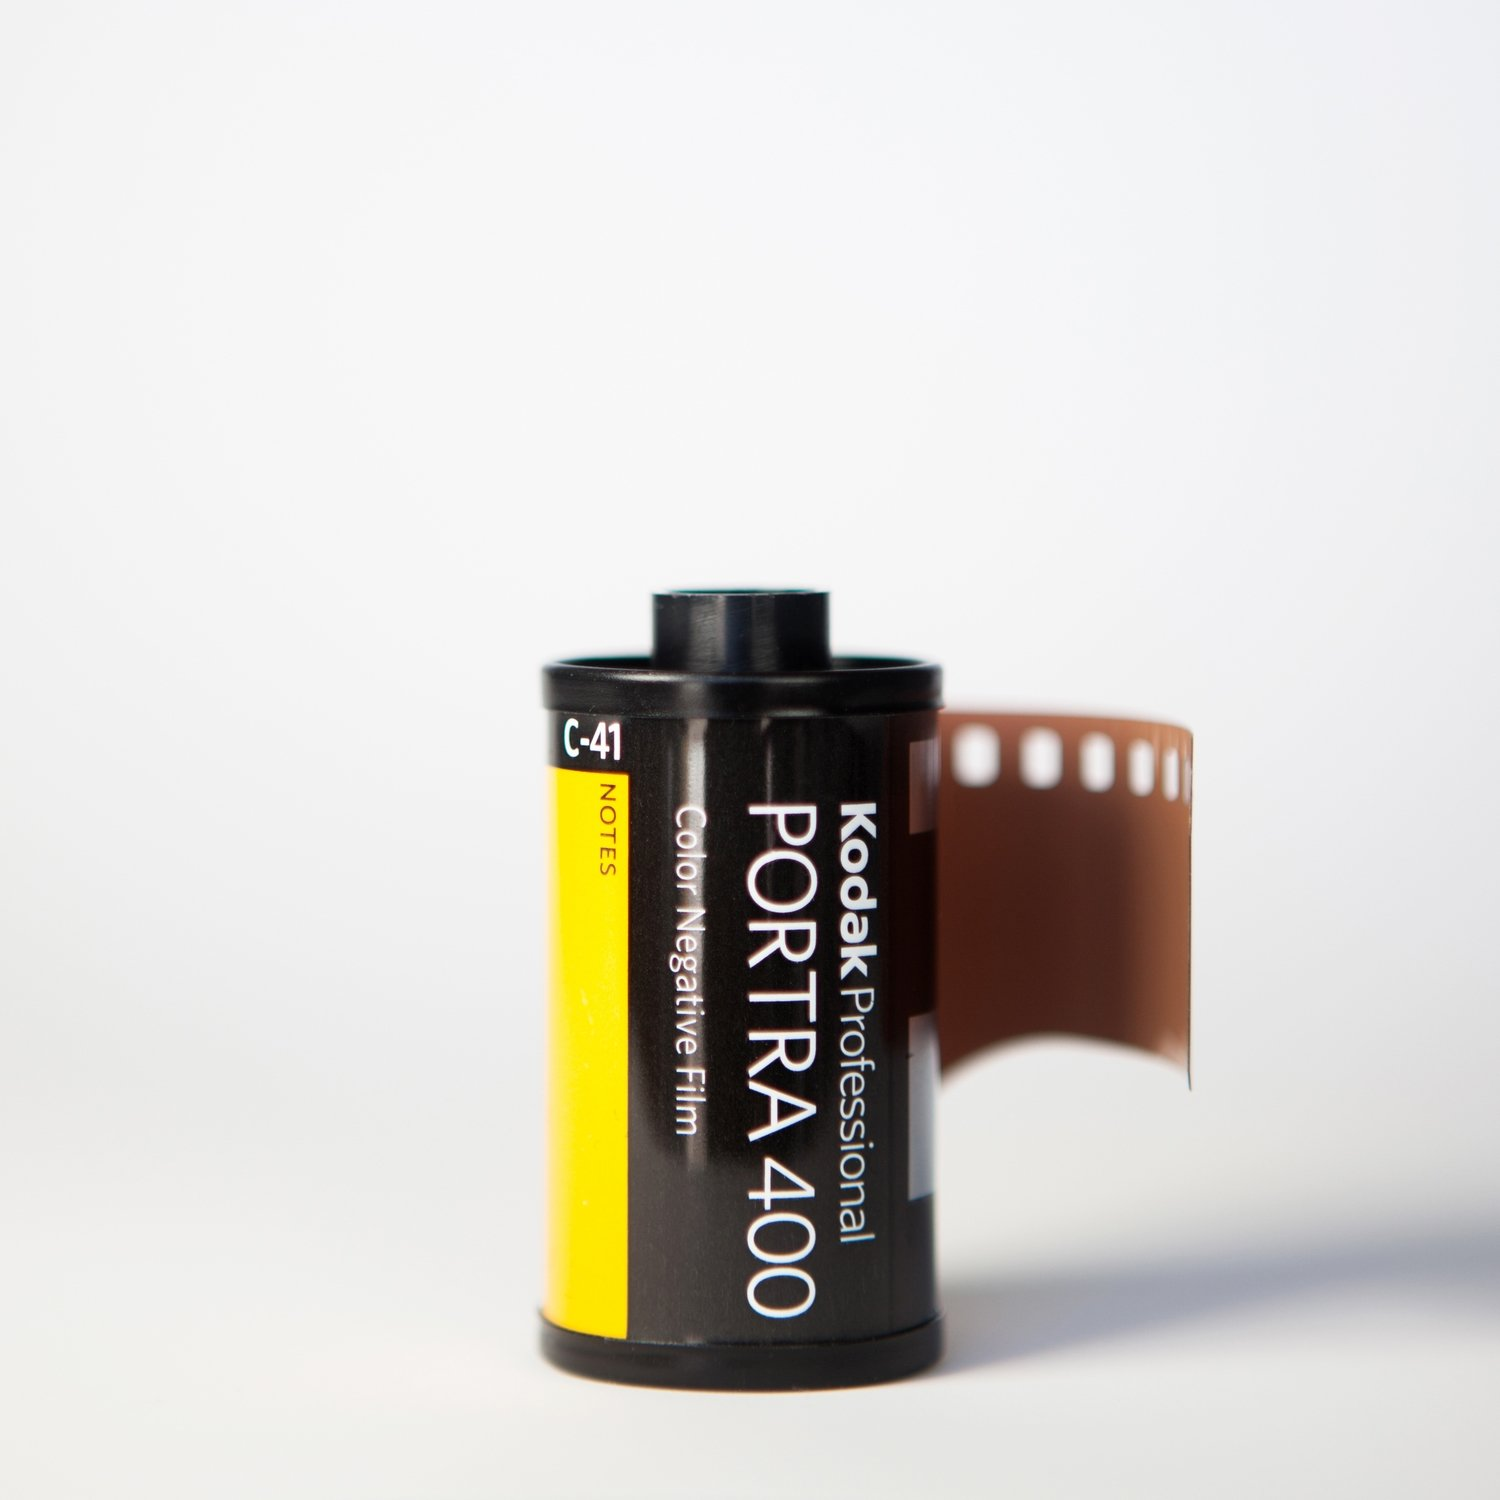 Kodak Portra 400 35mm 36 Exposures - From $7.25 a Roll!